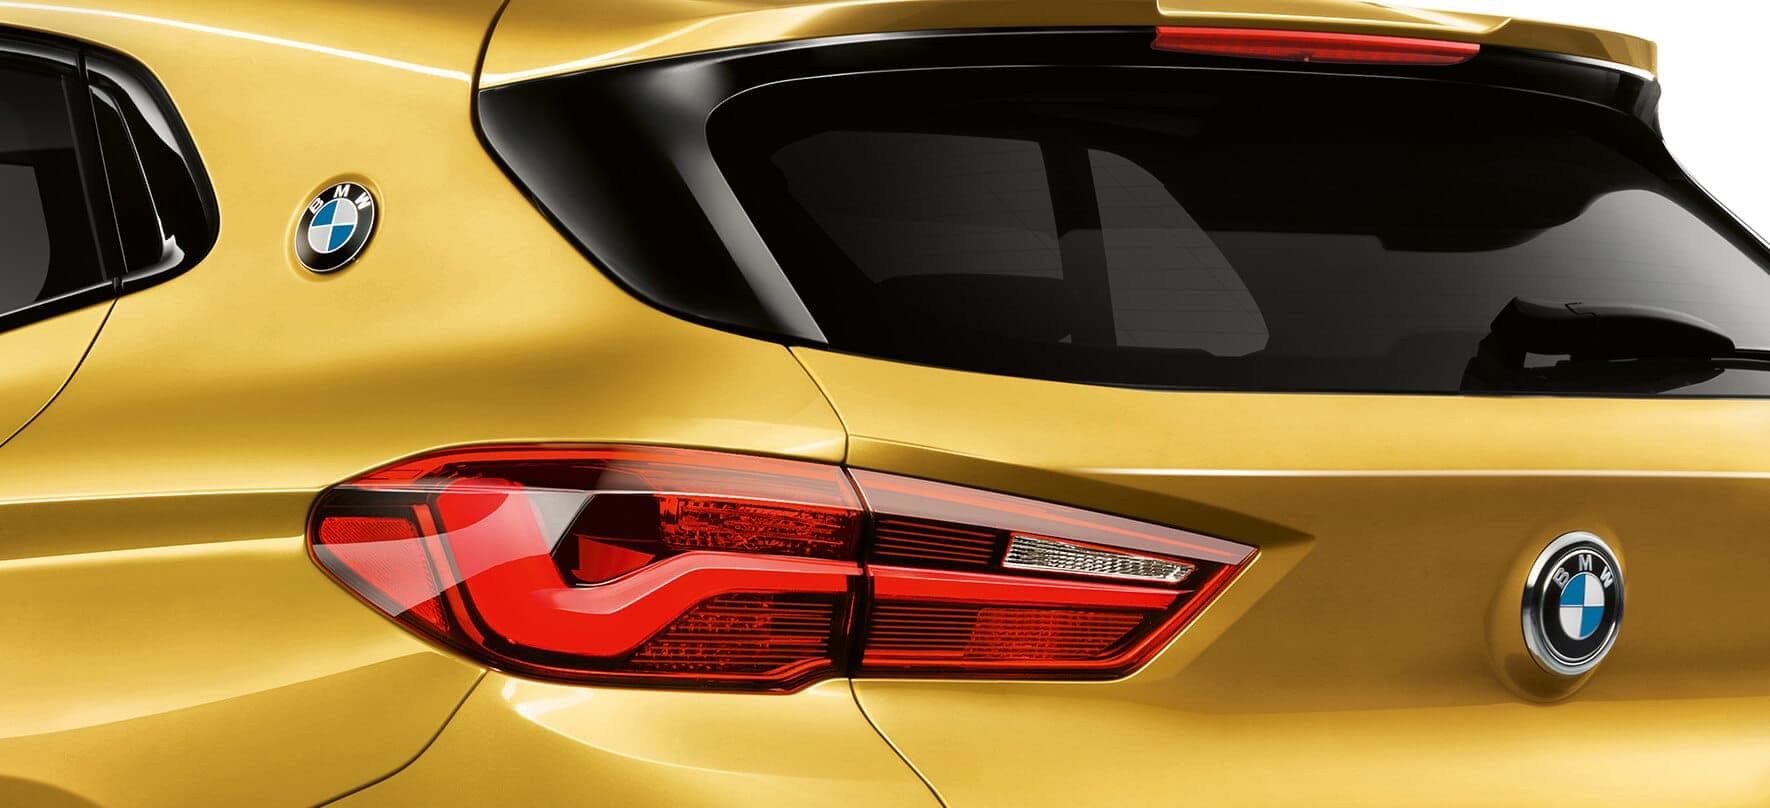 Close-up of the 2019 BMW X2 taillight.